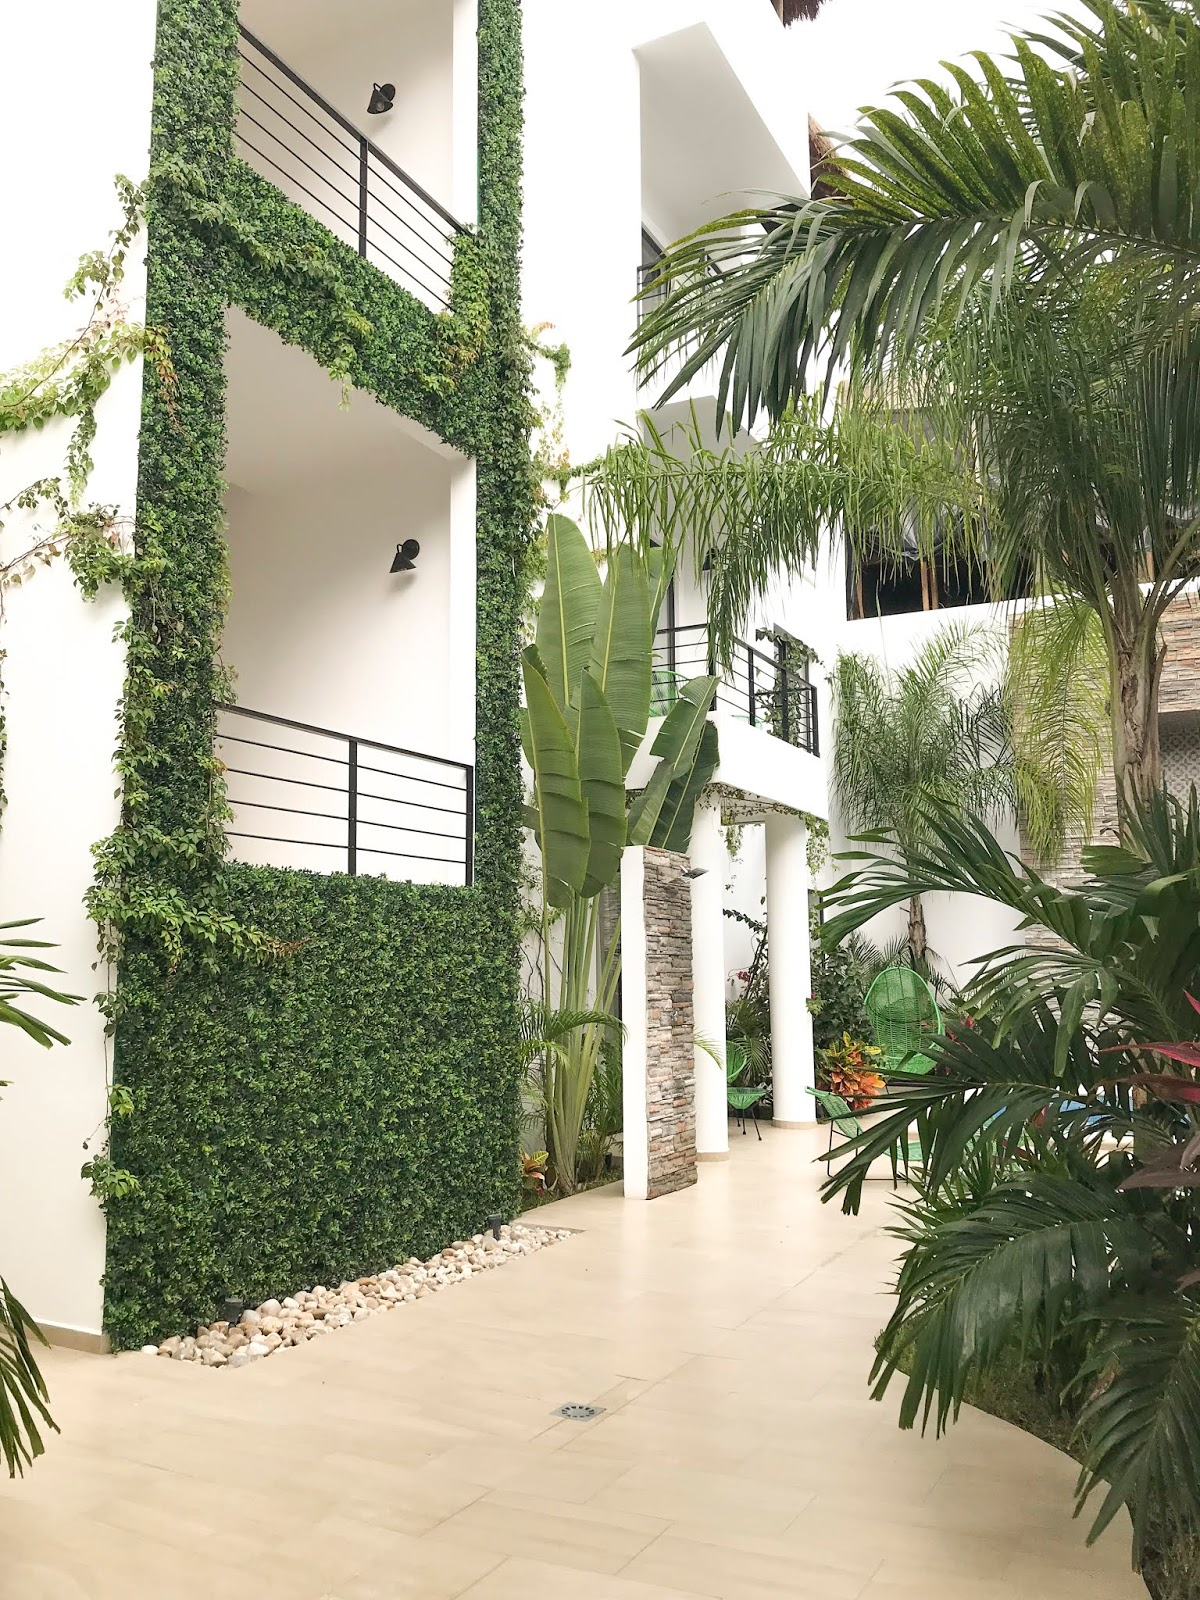 Elements Boutique Hotel in Tulum